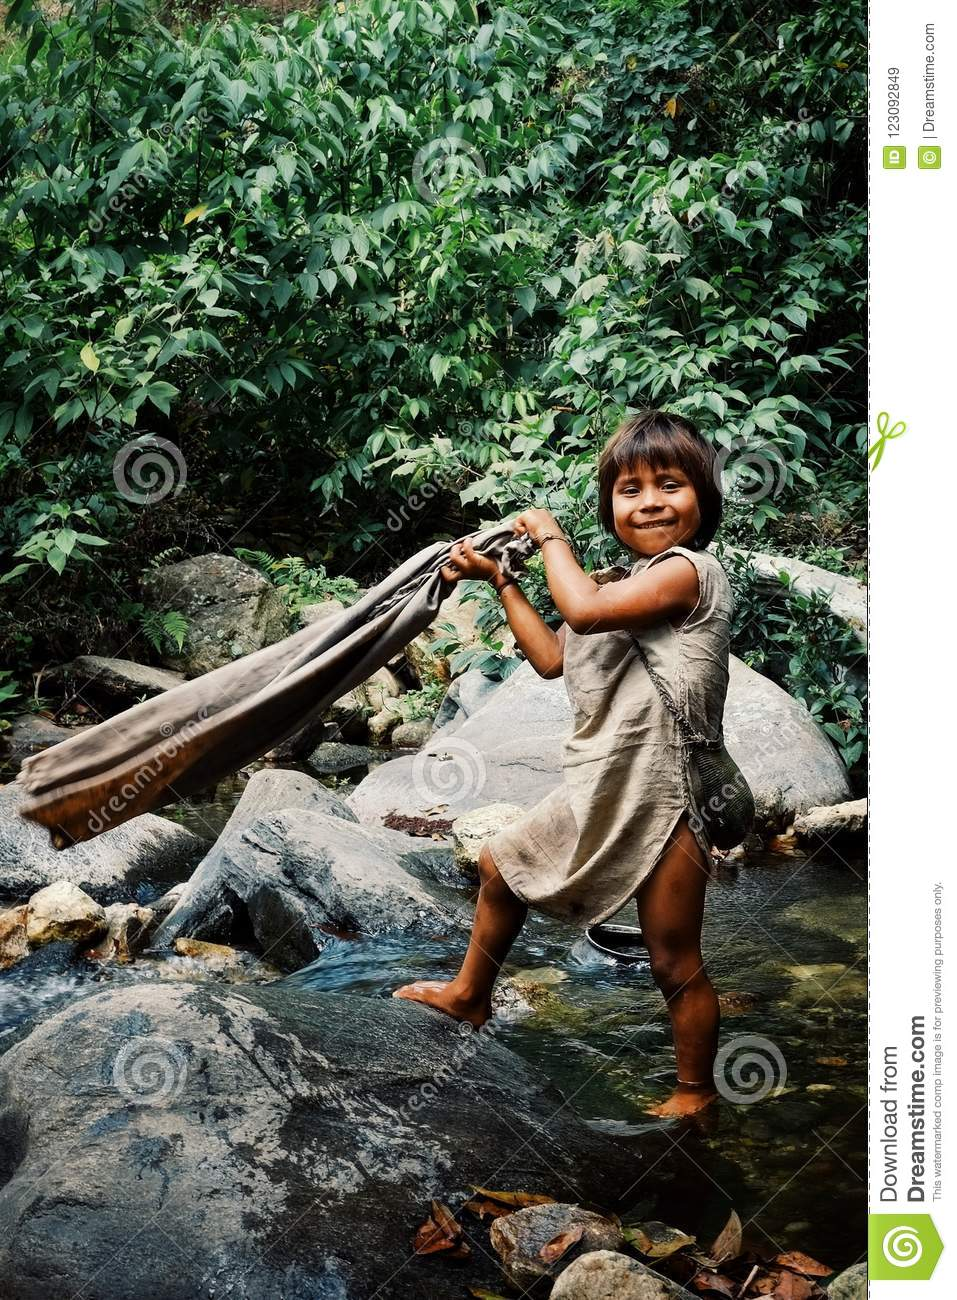 kogi tribal kid doing laundry in the nearby stream close to their home